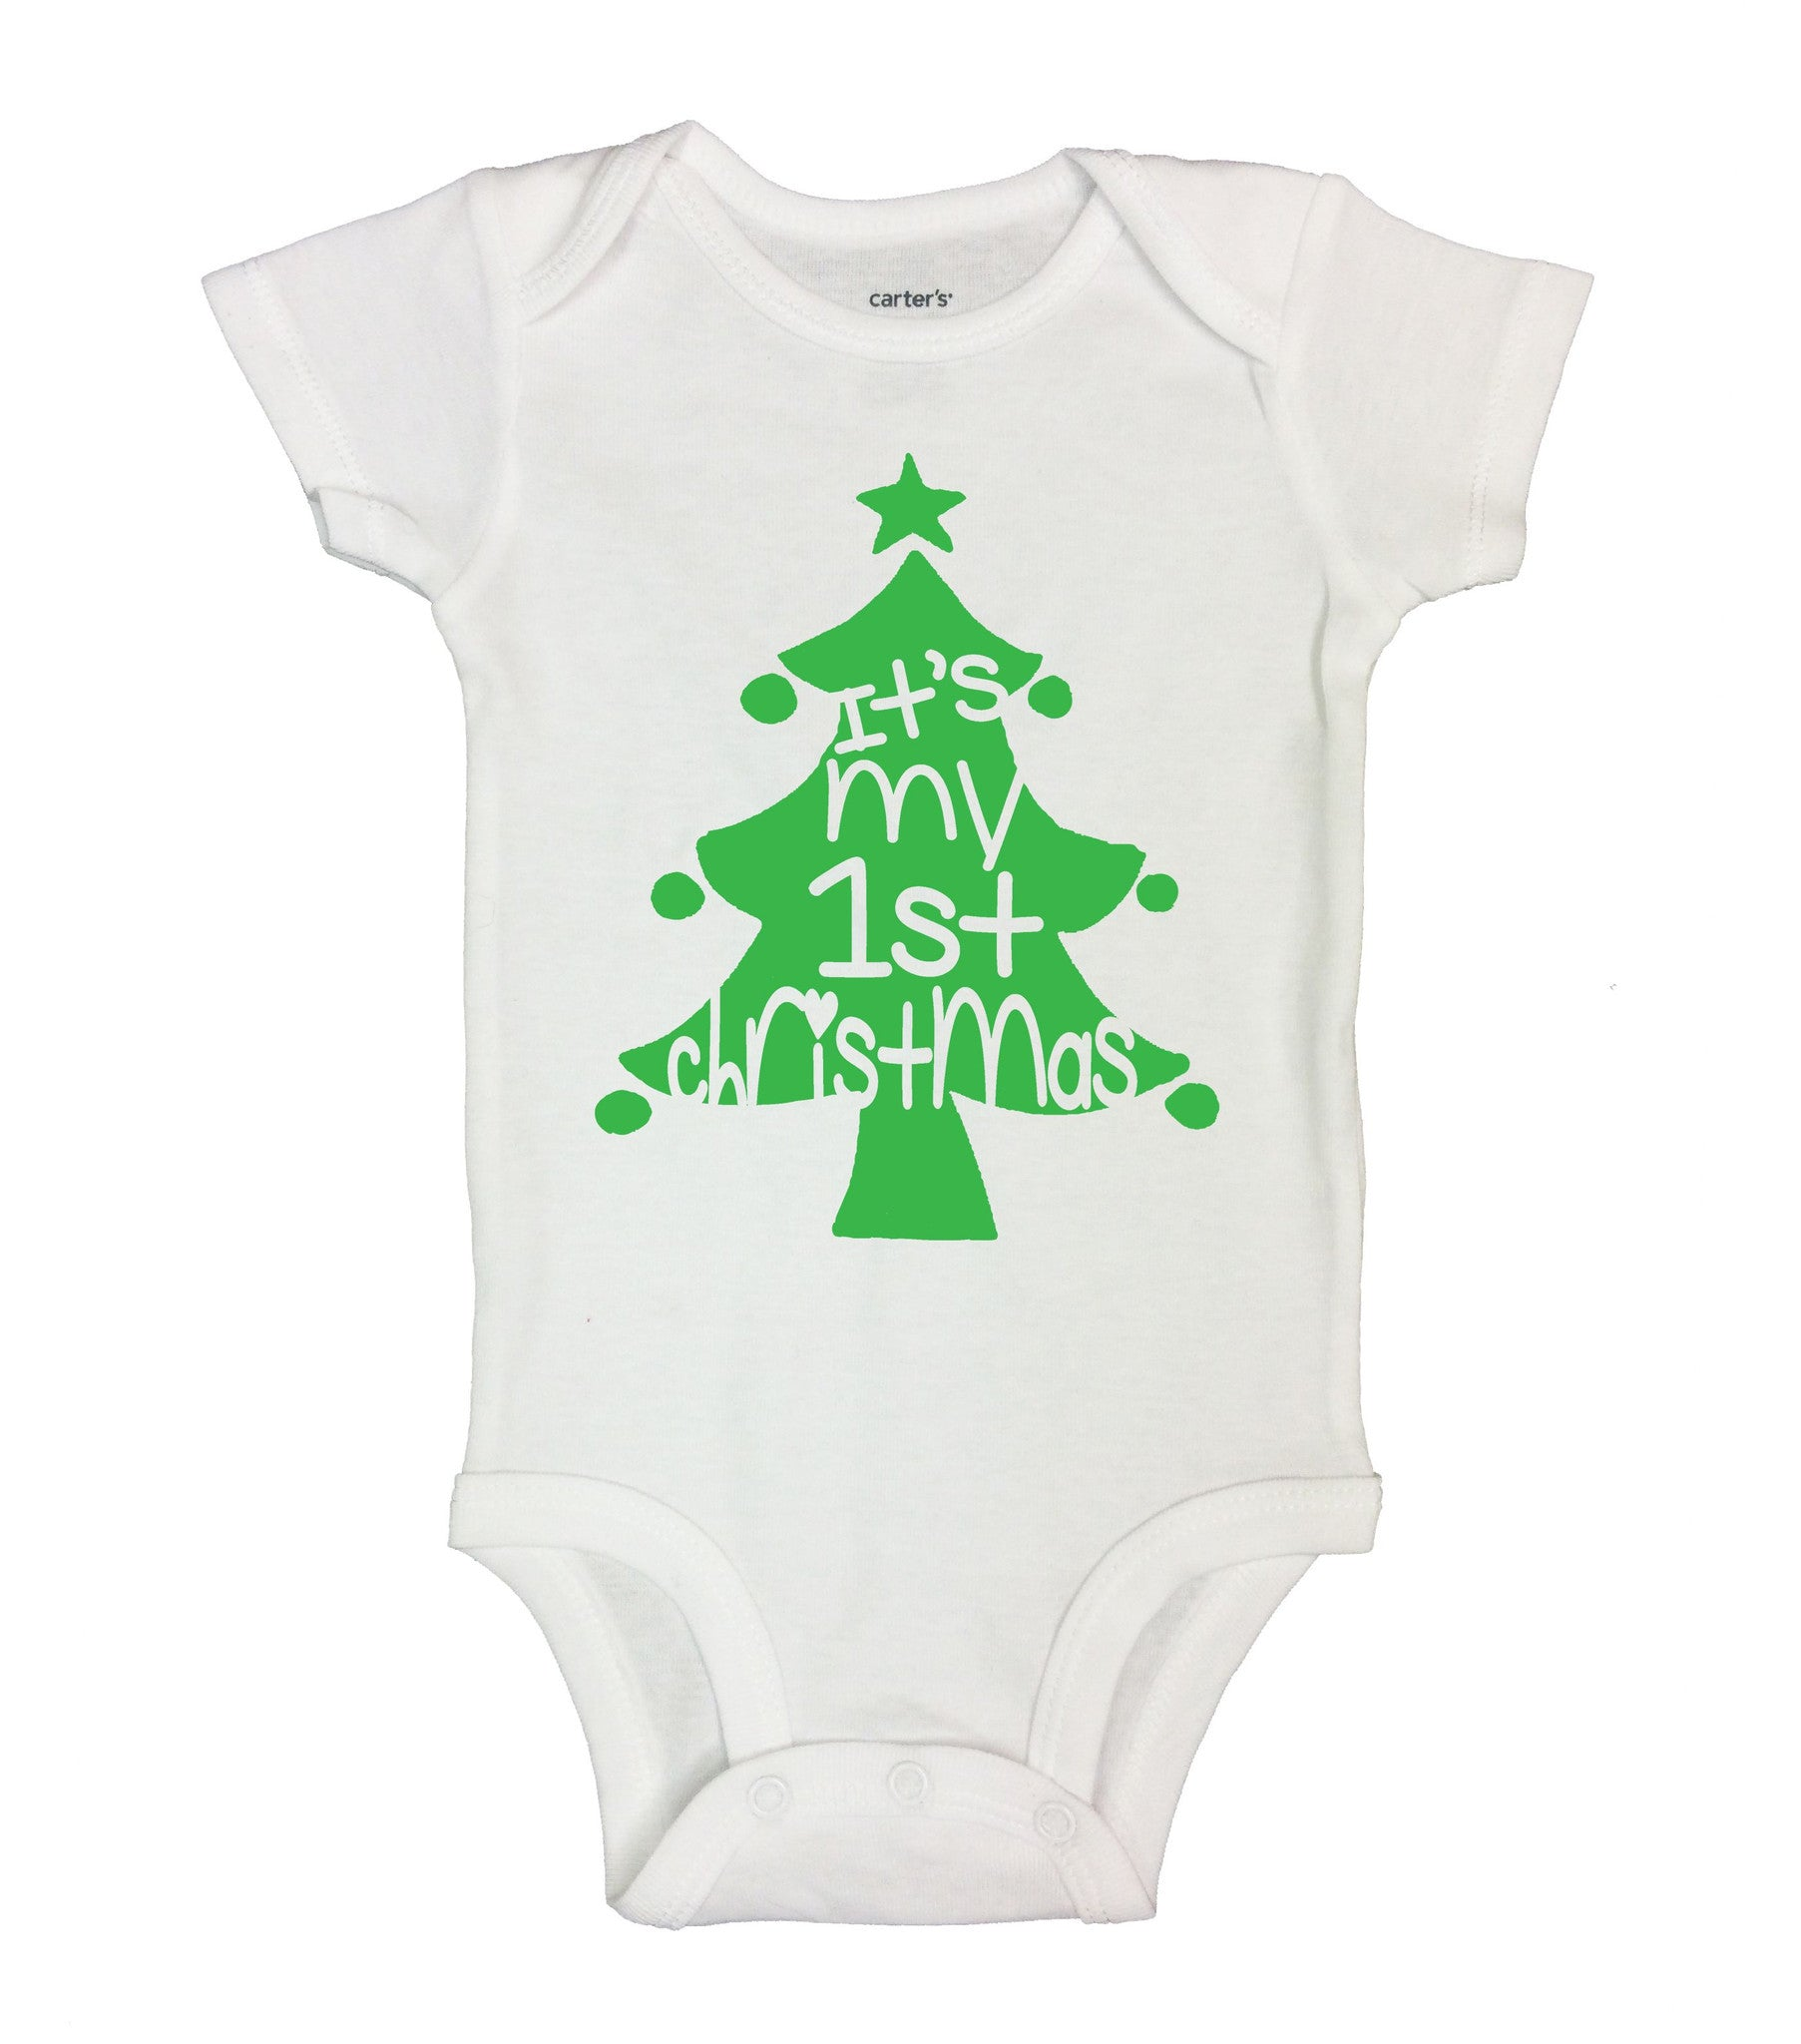 It's My 1st Christmas Funny Kids Onesie - B166 - Funny Shirts Tank Tops Burnouts and Triblends  - 2